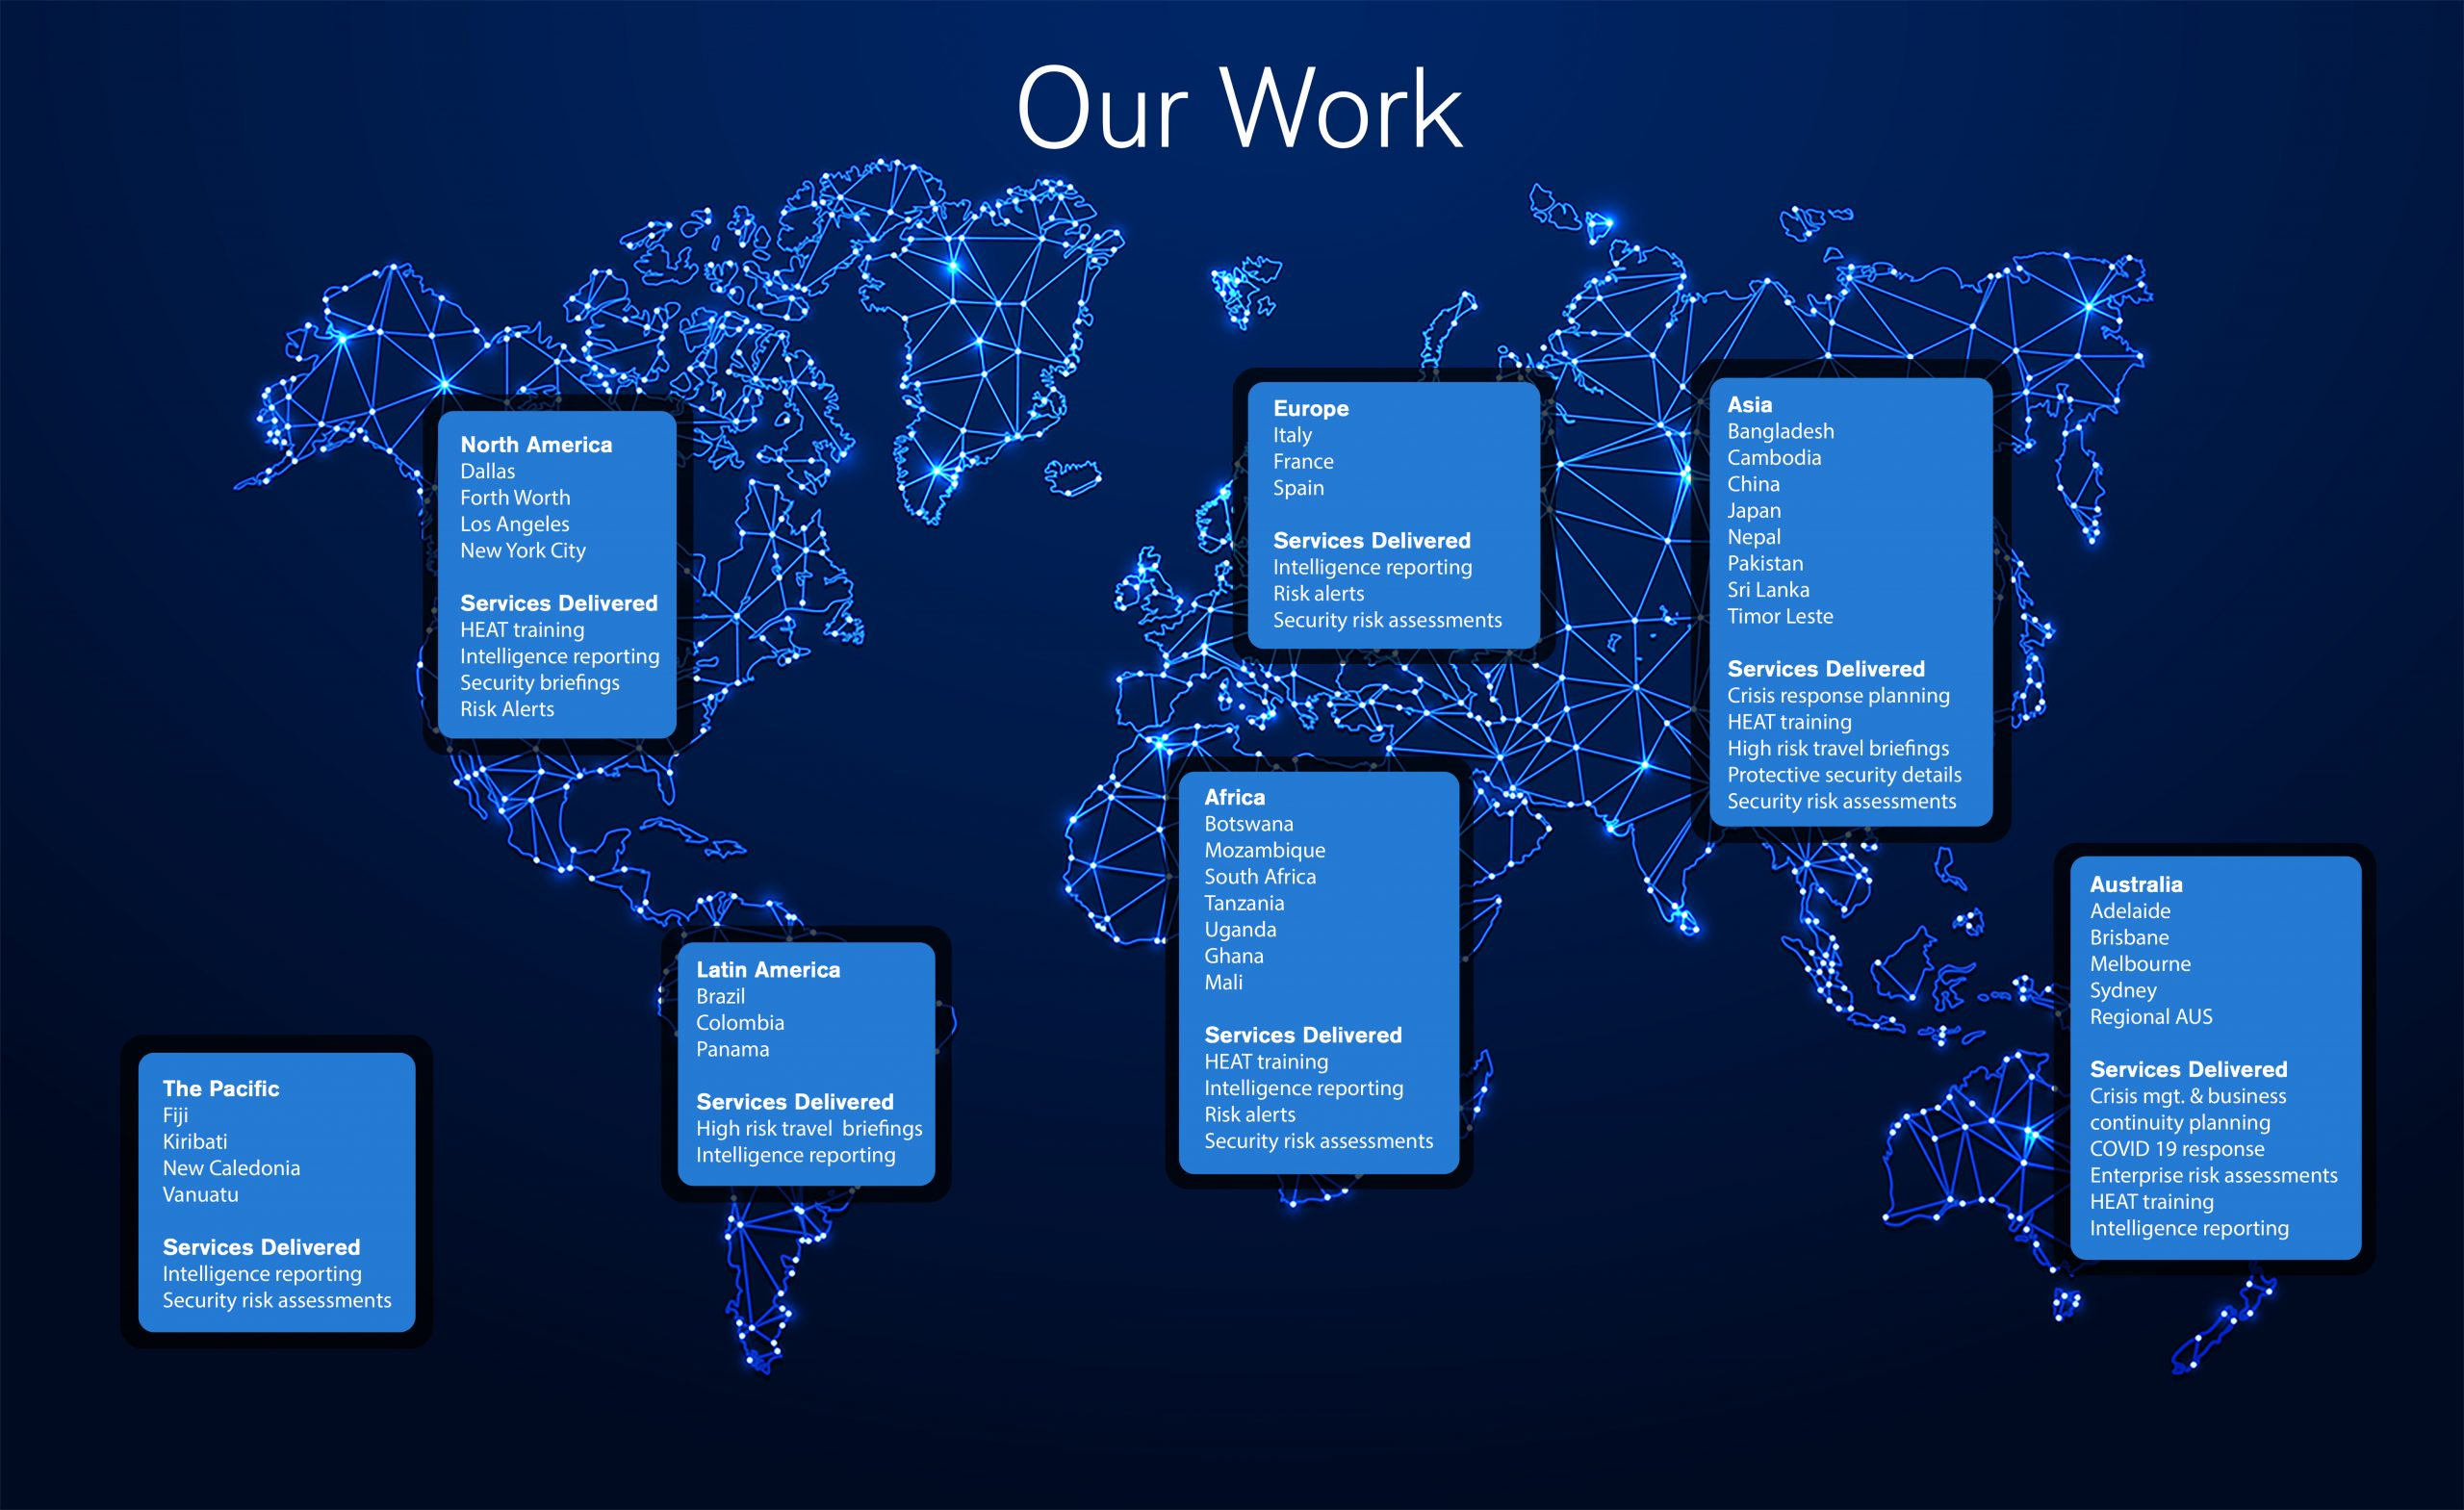 Our Work - Regions & Services Delivered